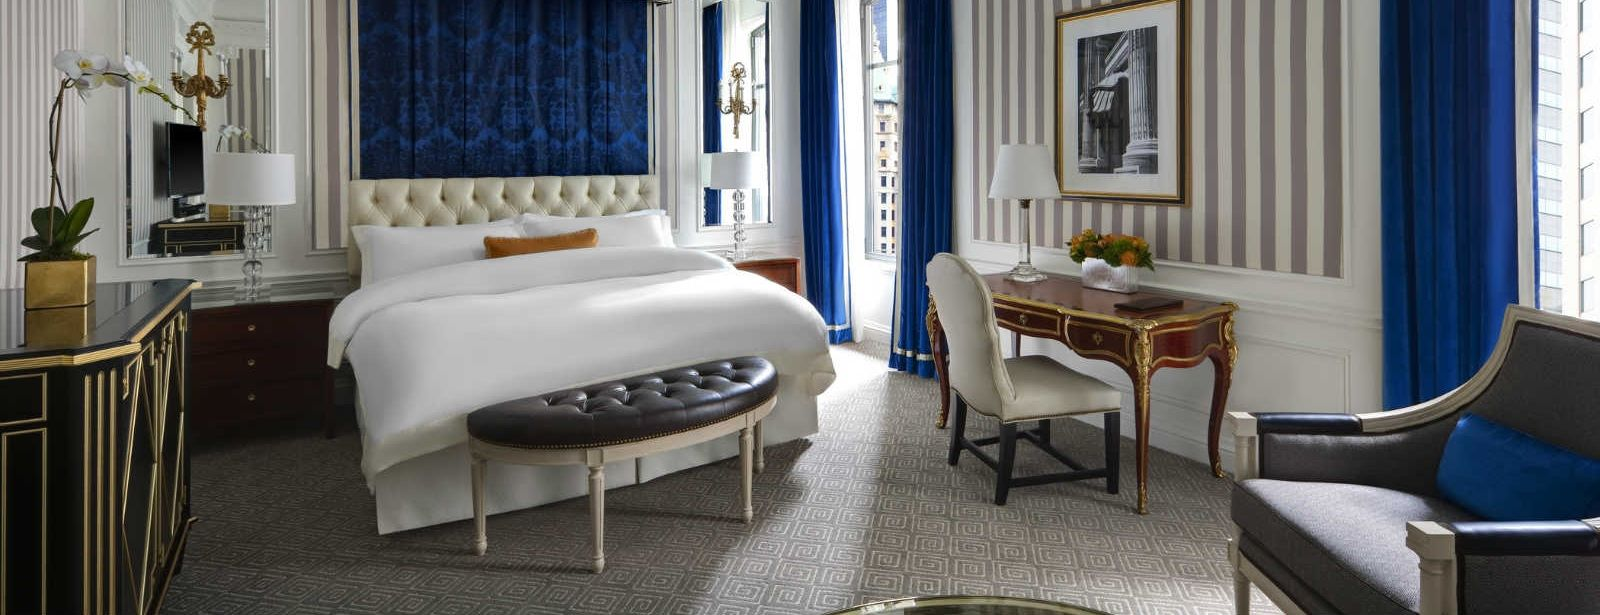 Deluxe Guest Room | The St. Regis New York